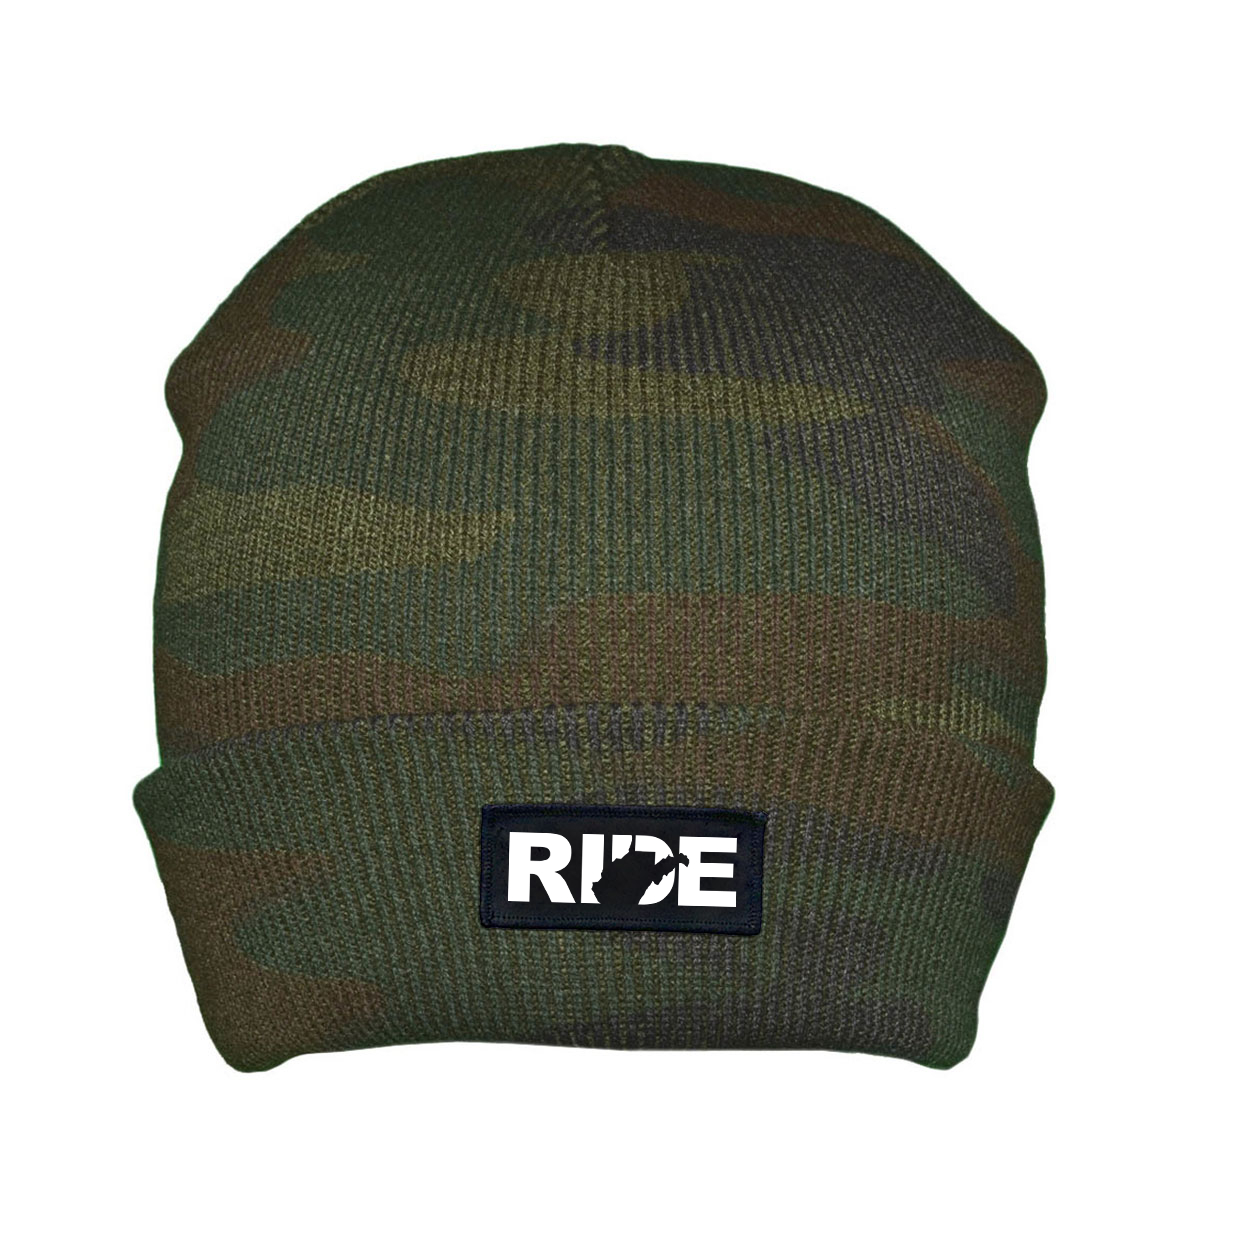 Ride West Virginia Night Out Woven Patch Roll Up Skully Beanie Camo (White Logo)